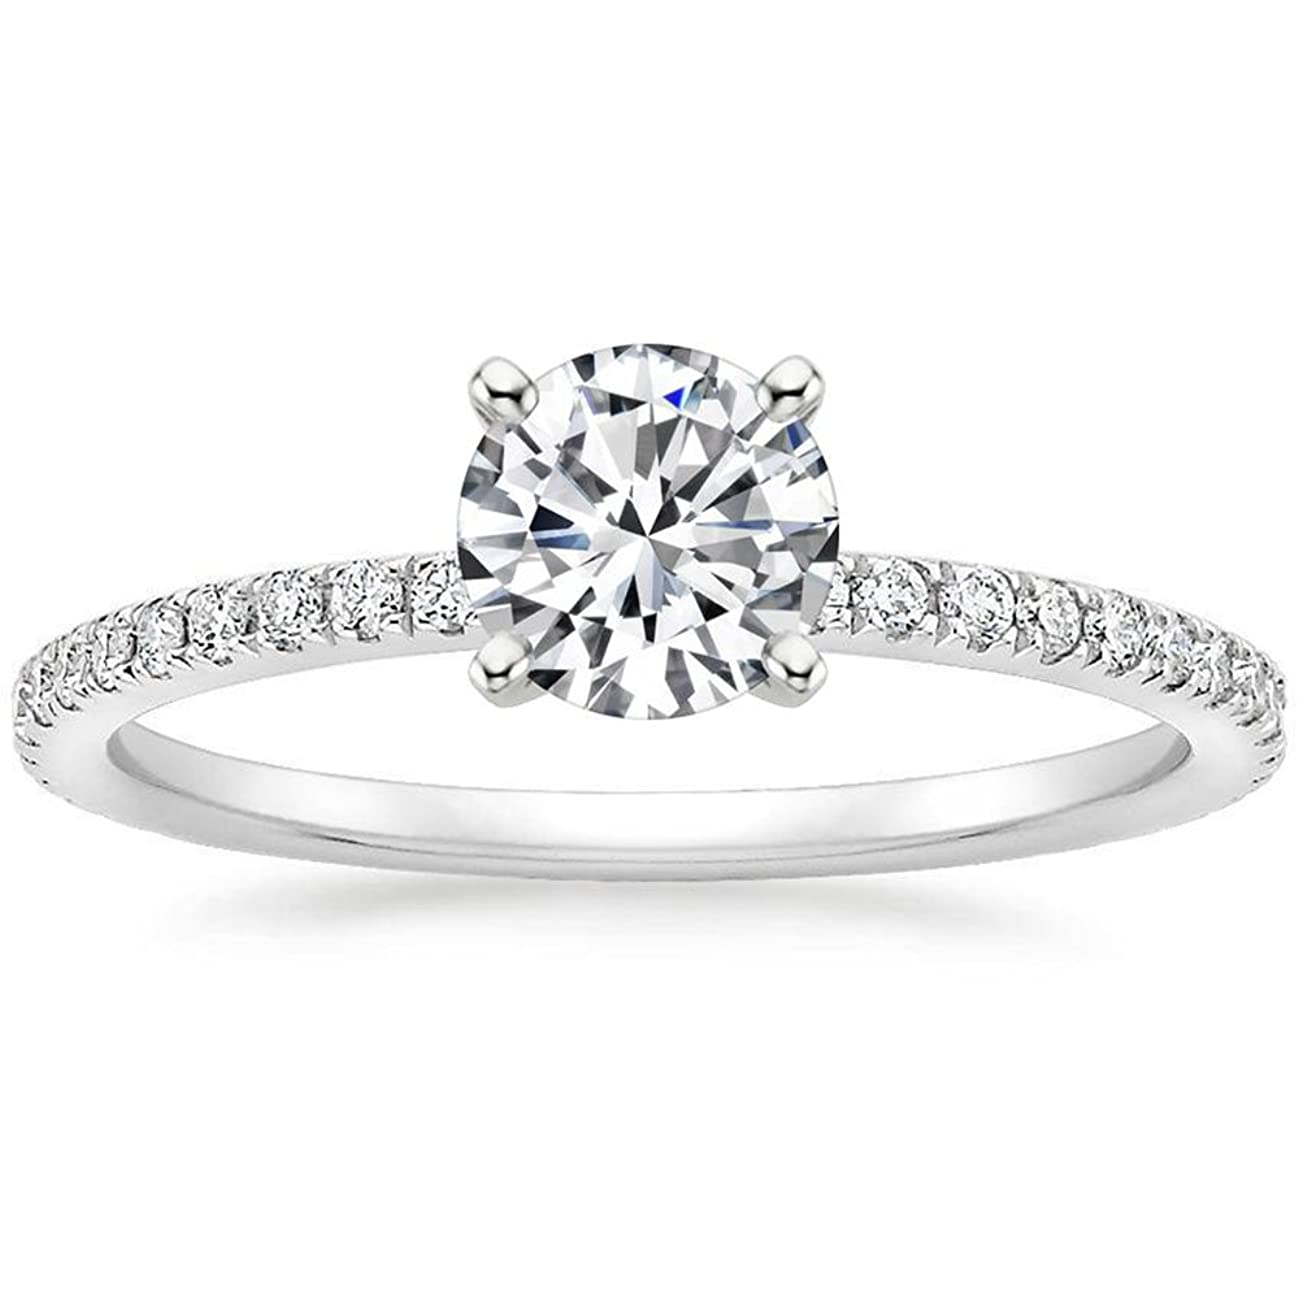 Lemon Grass 1 Ct Halo Solitaire Cubic Zirconia Promise Engagement Ring 925 Sterling Silver Ring Sizes 4 5 6 7 8 9